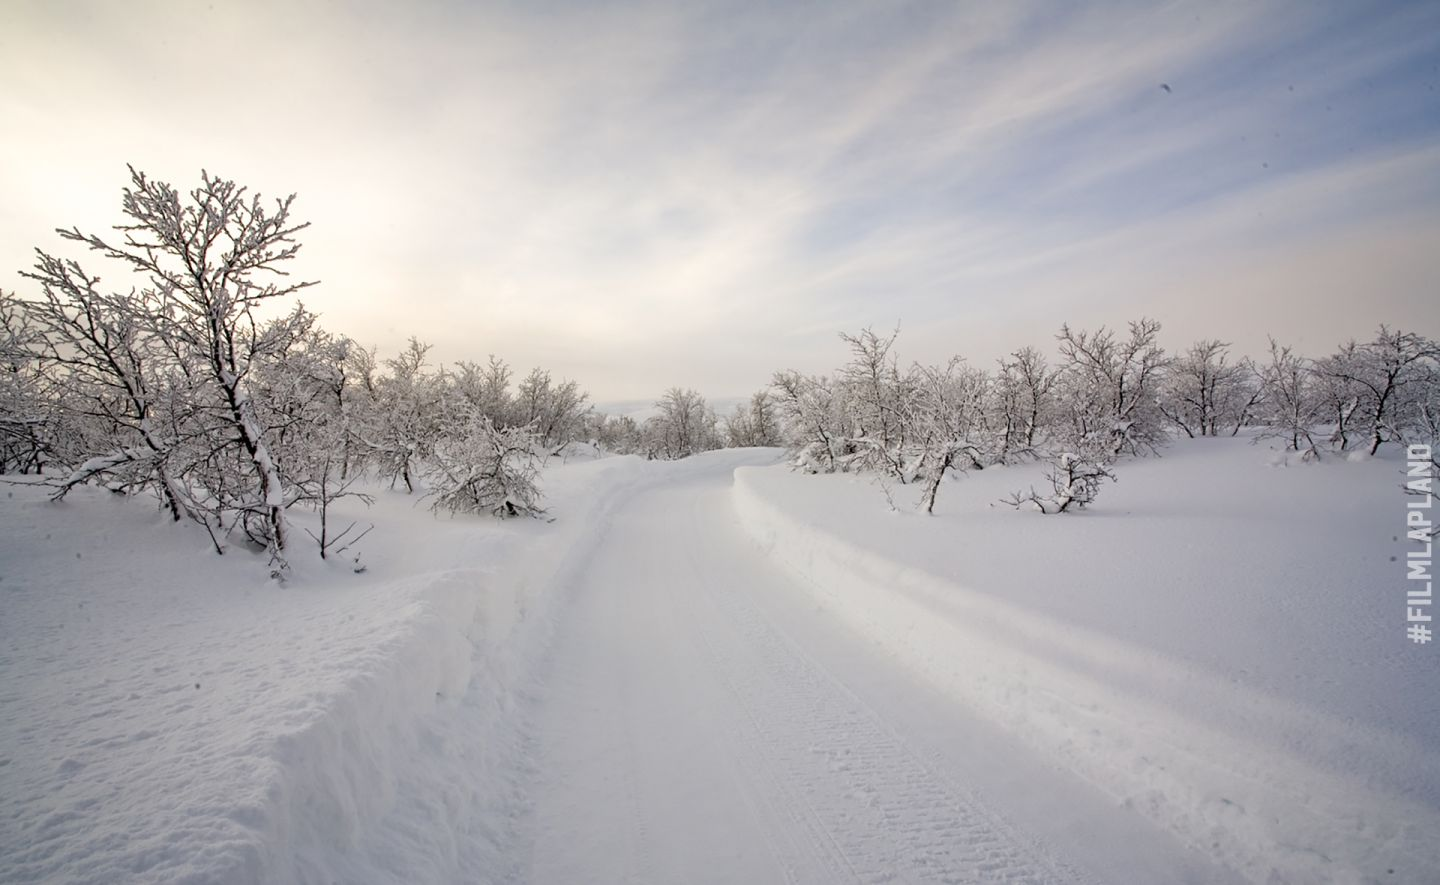 Snowmobile track in Enontekiö, northern Finland